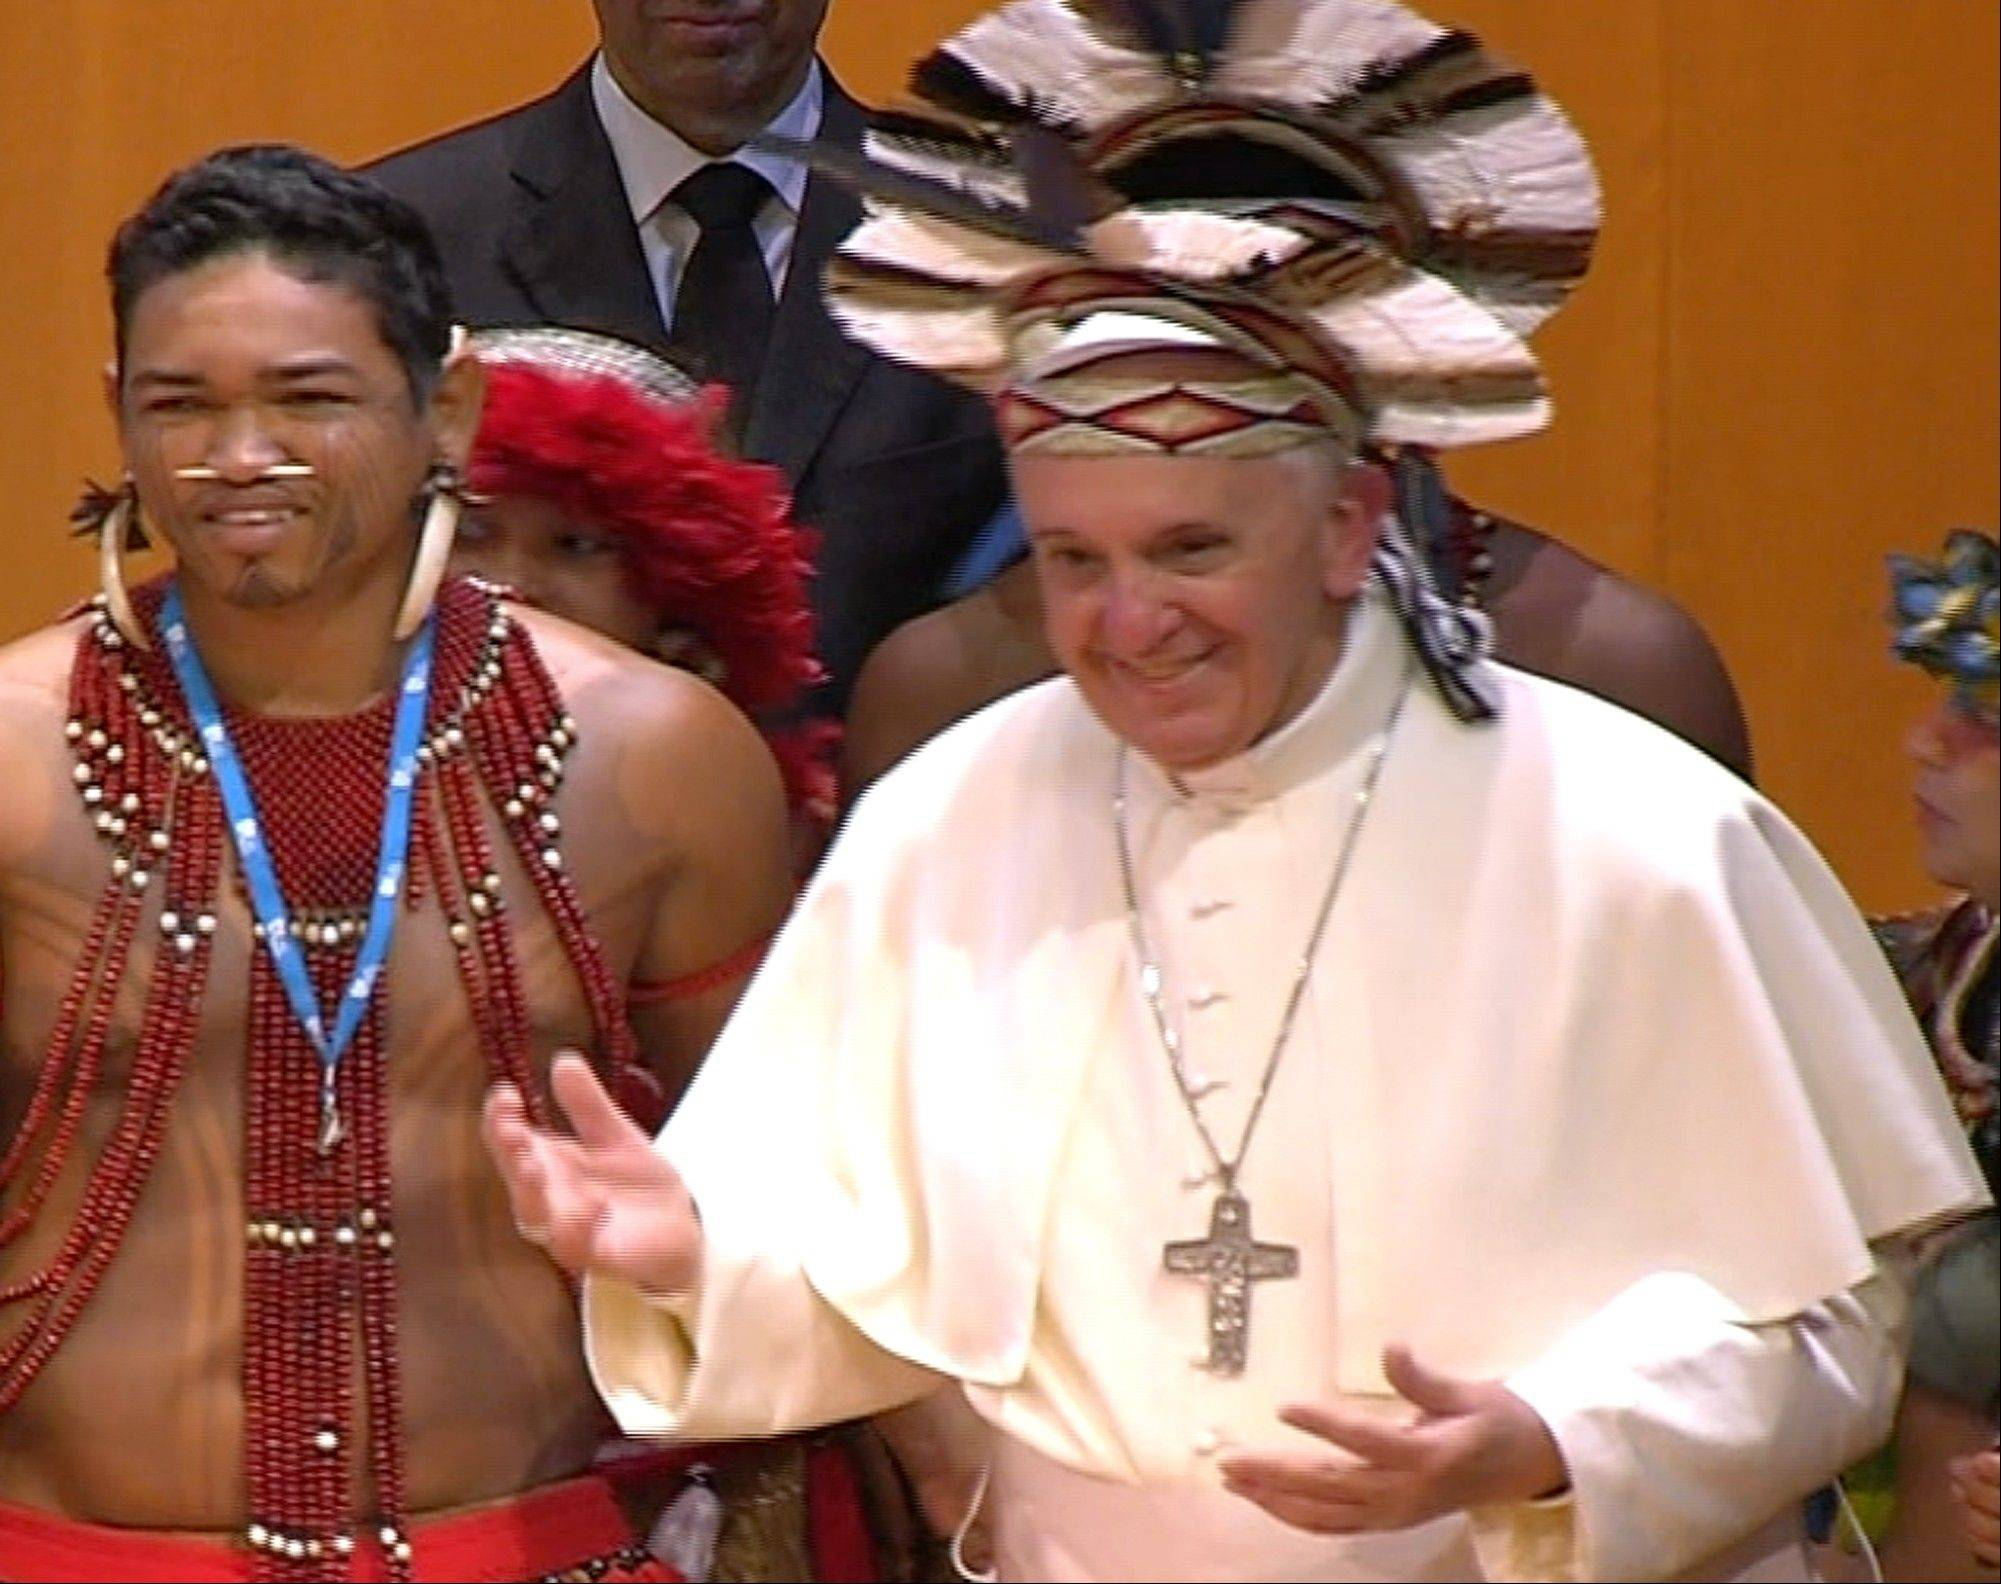 Associated Press In this frame grab from video Pope Francis wears an indigenous feather hat given to him by representatives of one of Brazil's native tribes during a meeting at the Municipal Theater in Rio de Janeiro on Saturday, July 27. Pope Francis is on the sixth day of his trip to Brazil where he will attend the 2013 World Youth Day in Rio.